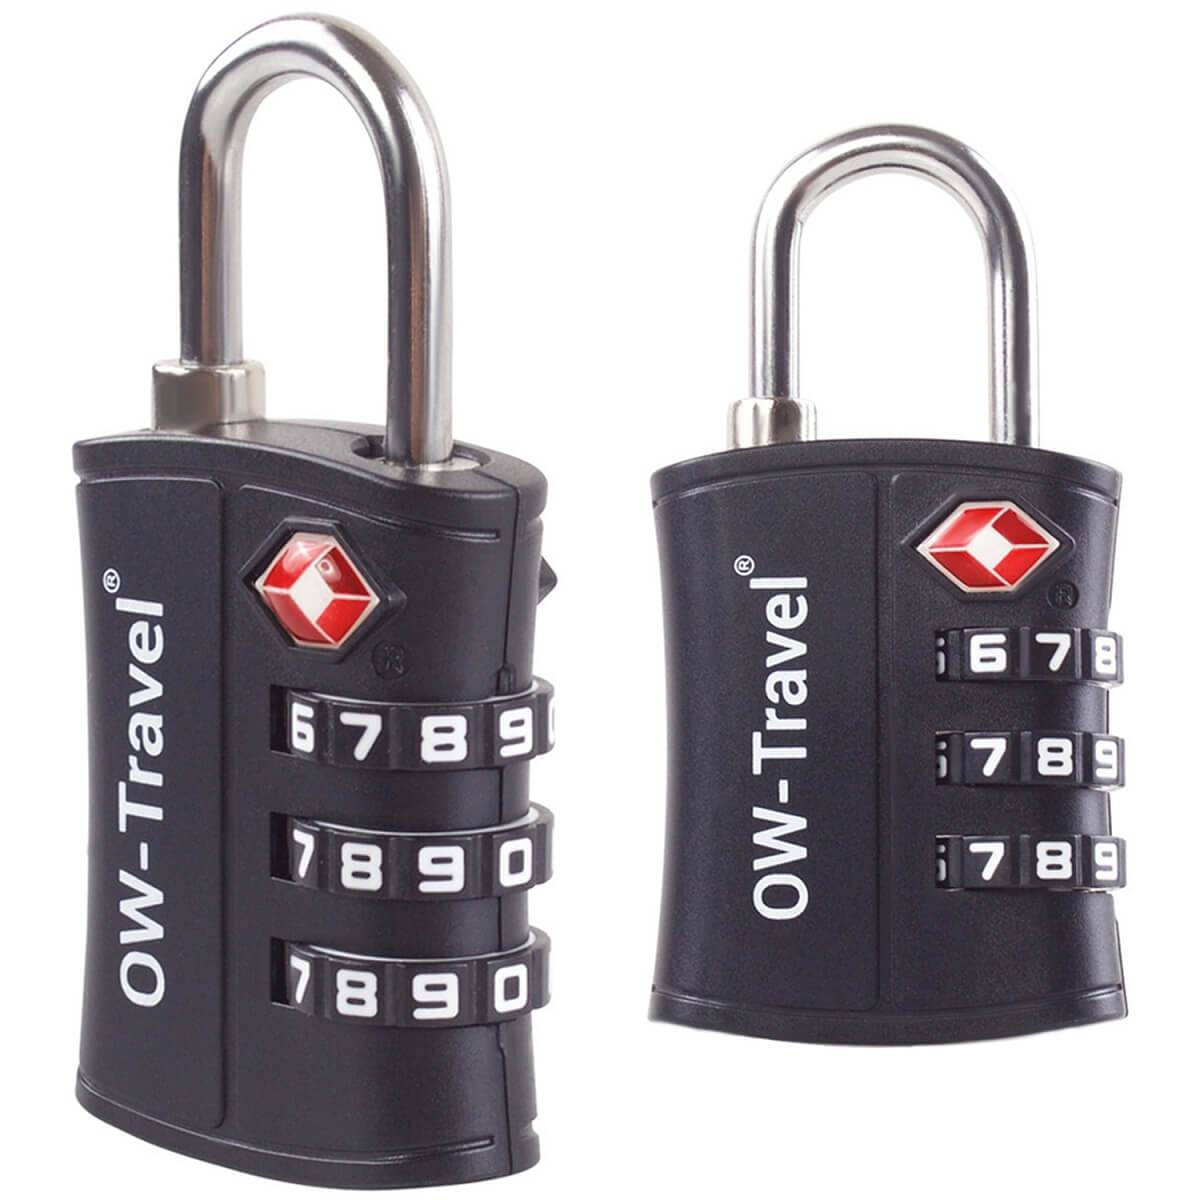 OW Travel TSA Approved Padlocks Luggage Case Locks for Suitcases, Backpacks, Gym Locker - 3 Dial Padlock Black 2 Pack - Heavy Duty 3 Dial Padlock